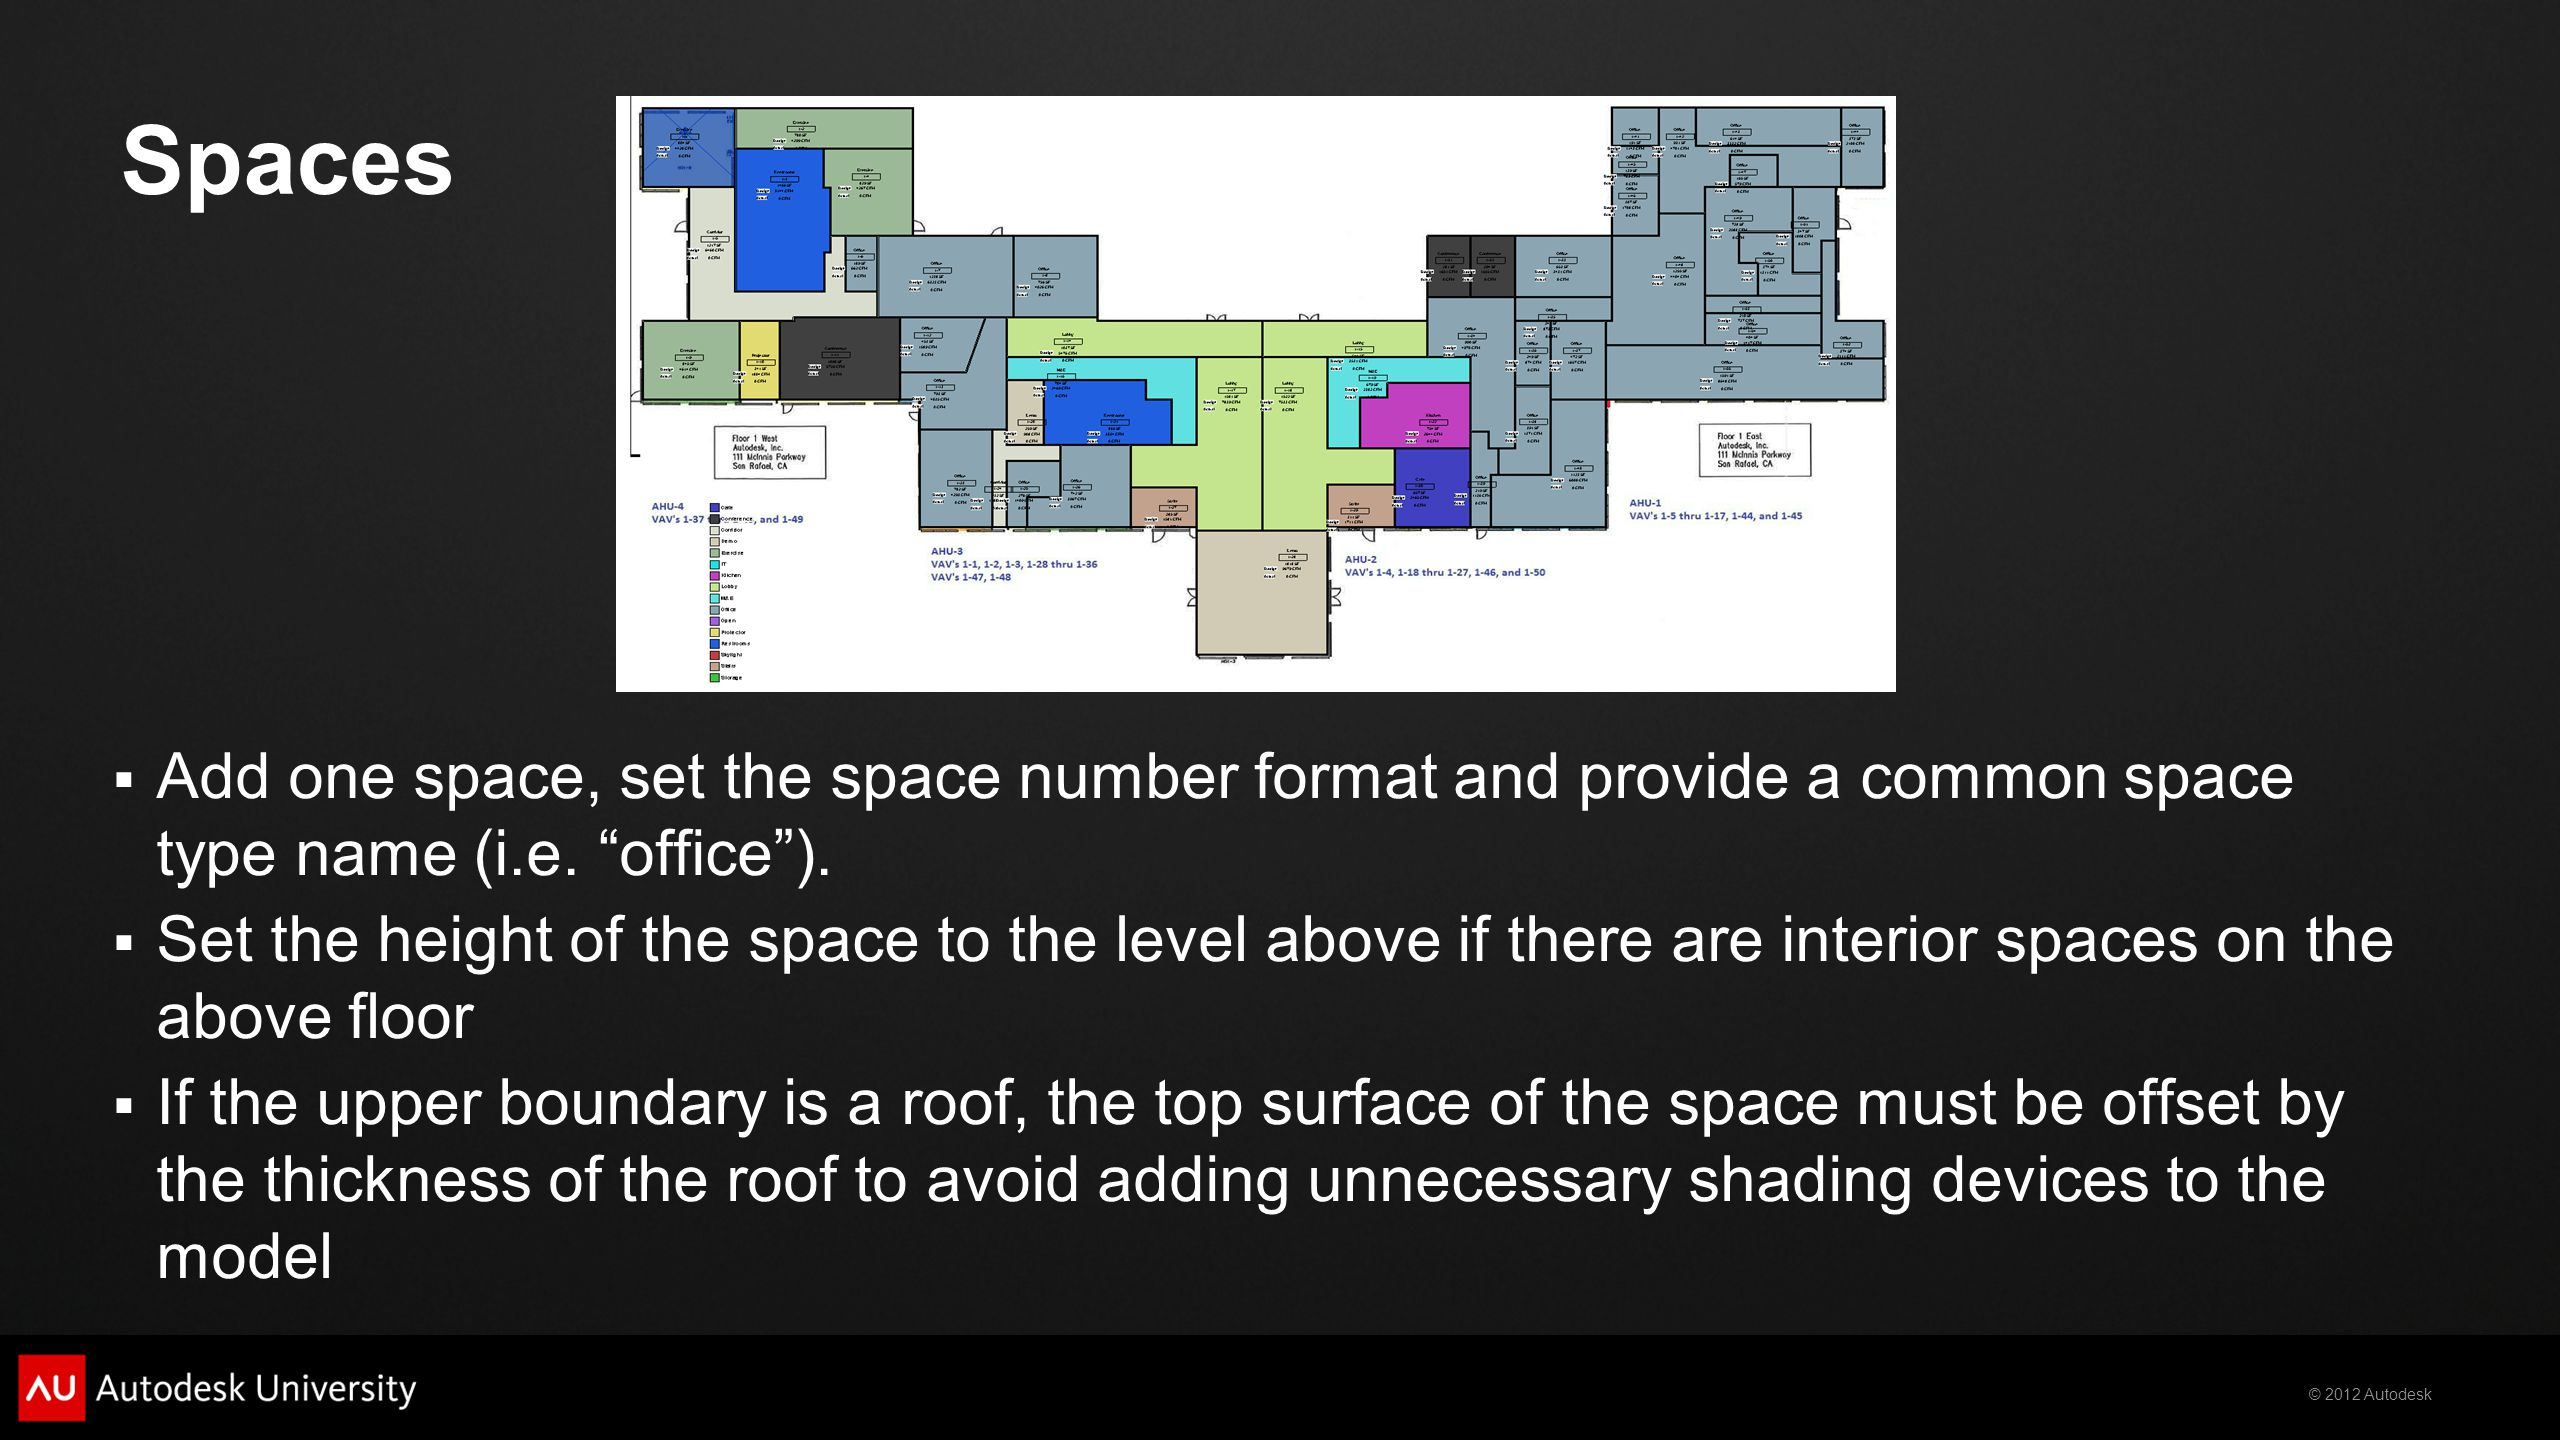 Spaces Add one space, set the space number format and provide a common space type name (i.e. office ).